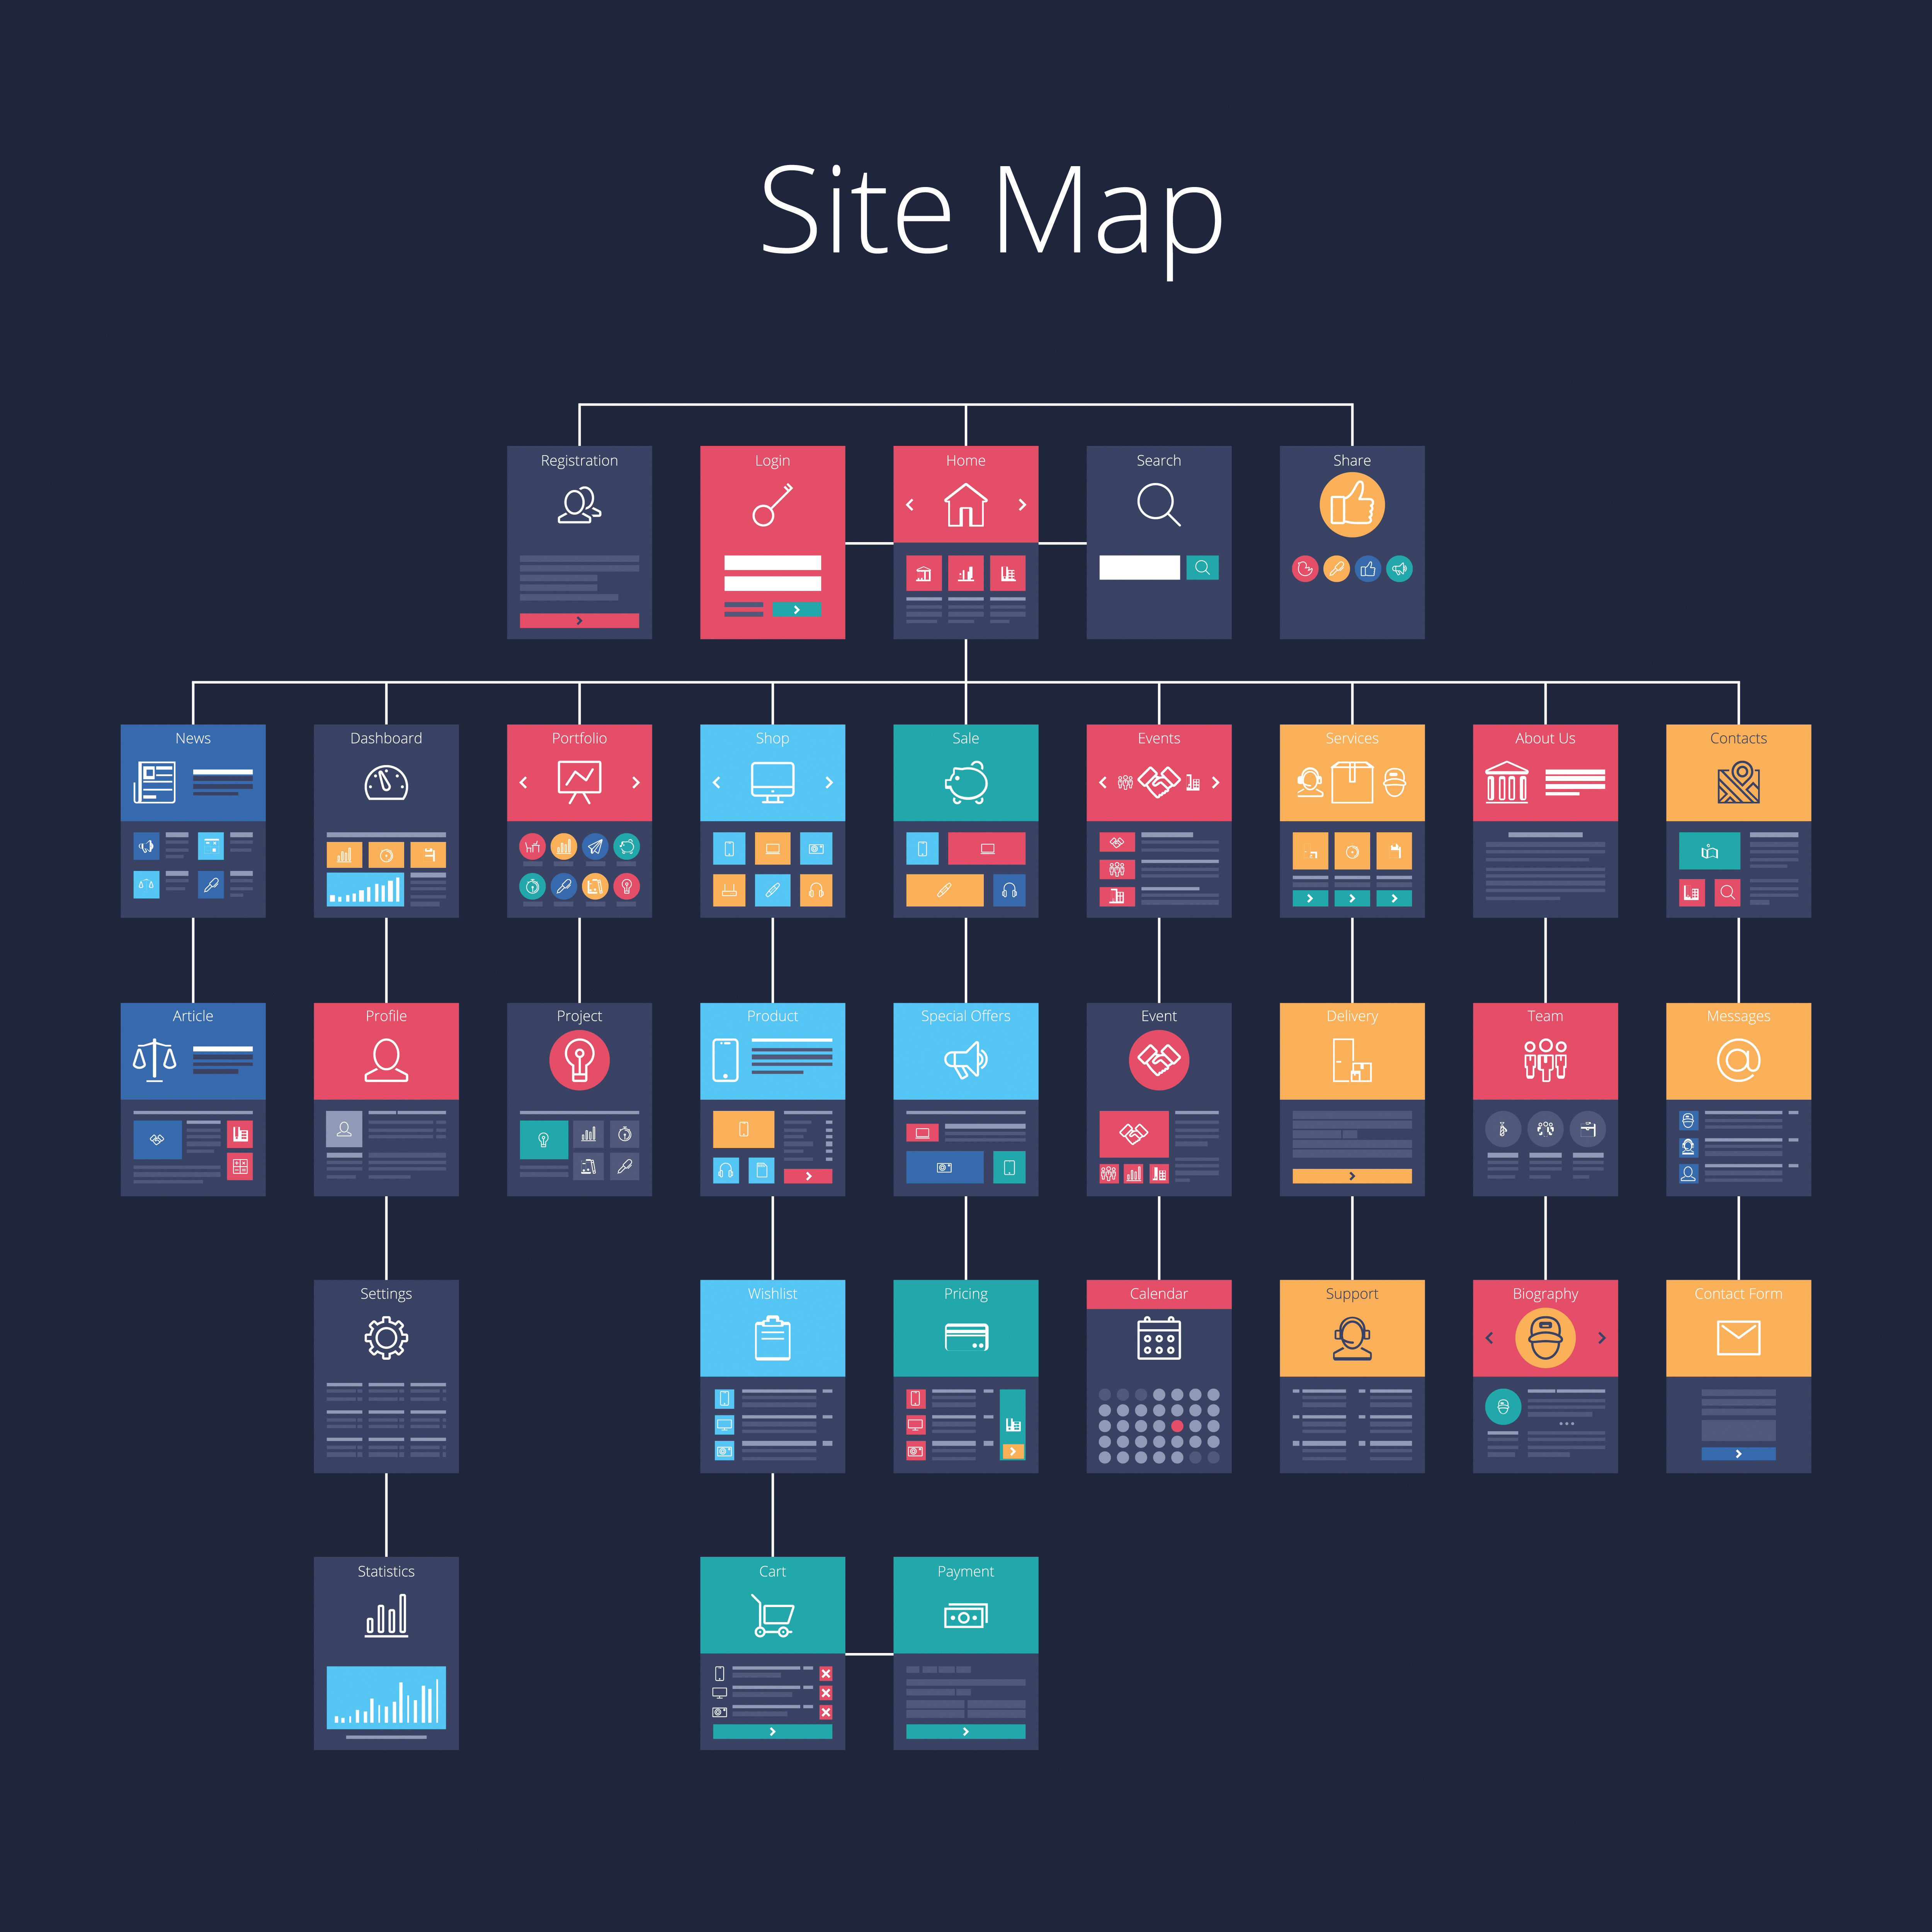 Site Map Example